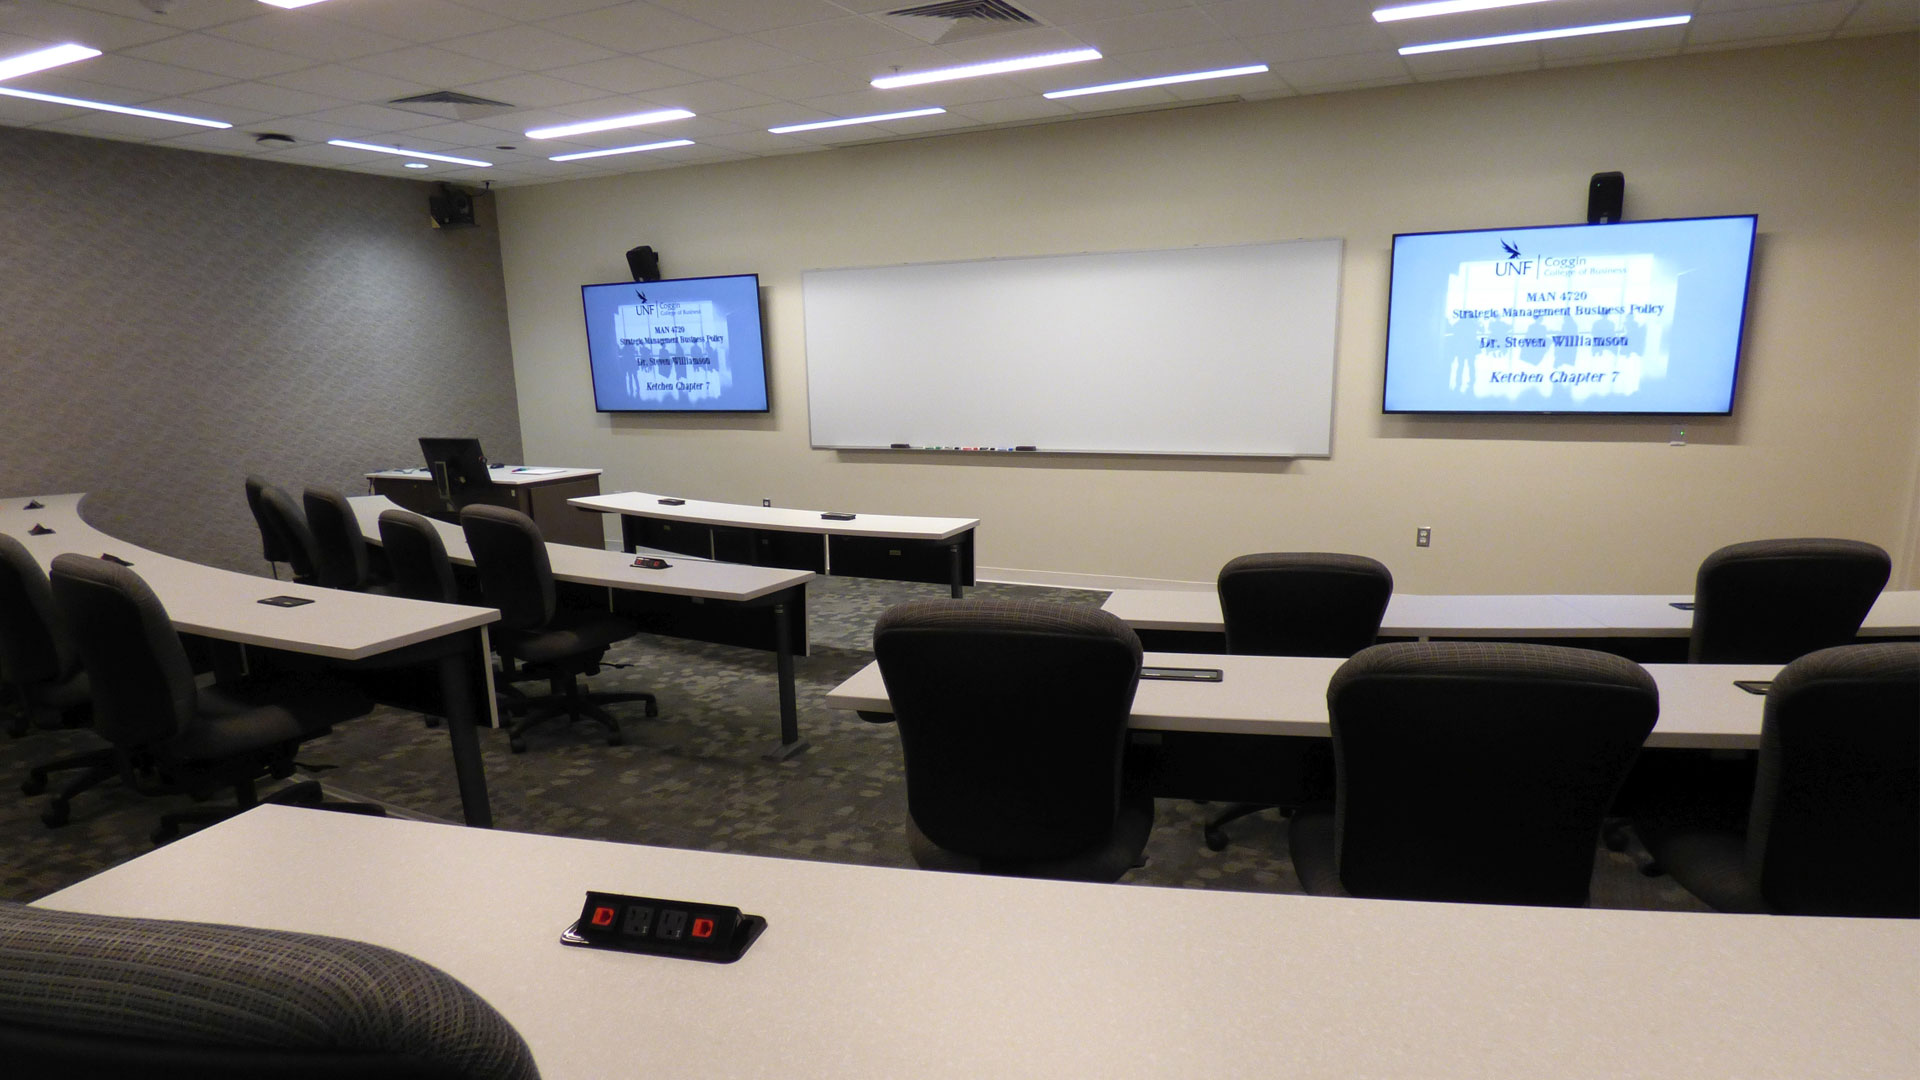 Distance learning classroom facility where lectures are recorded by the Monarch HD